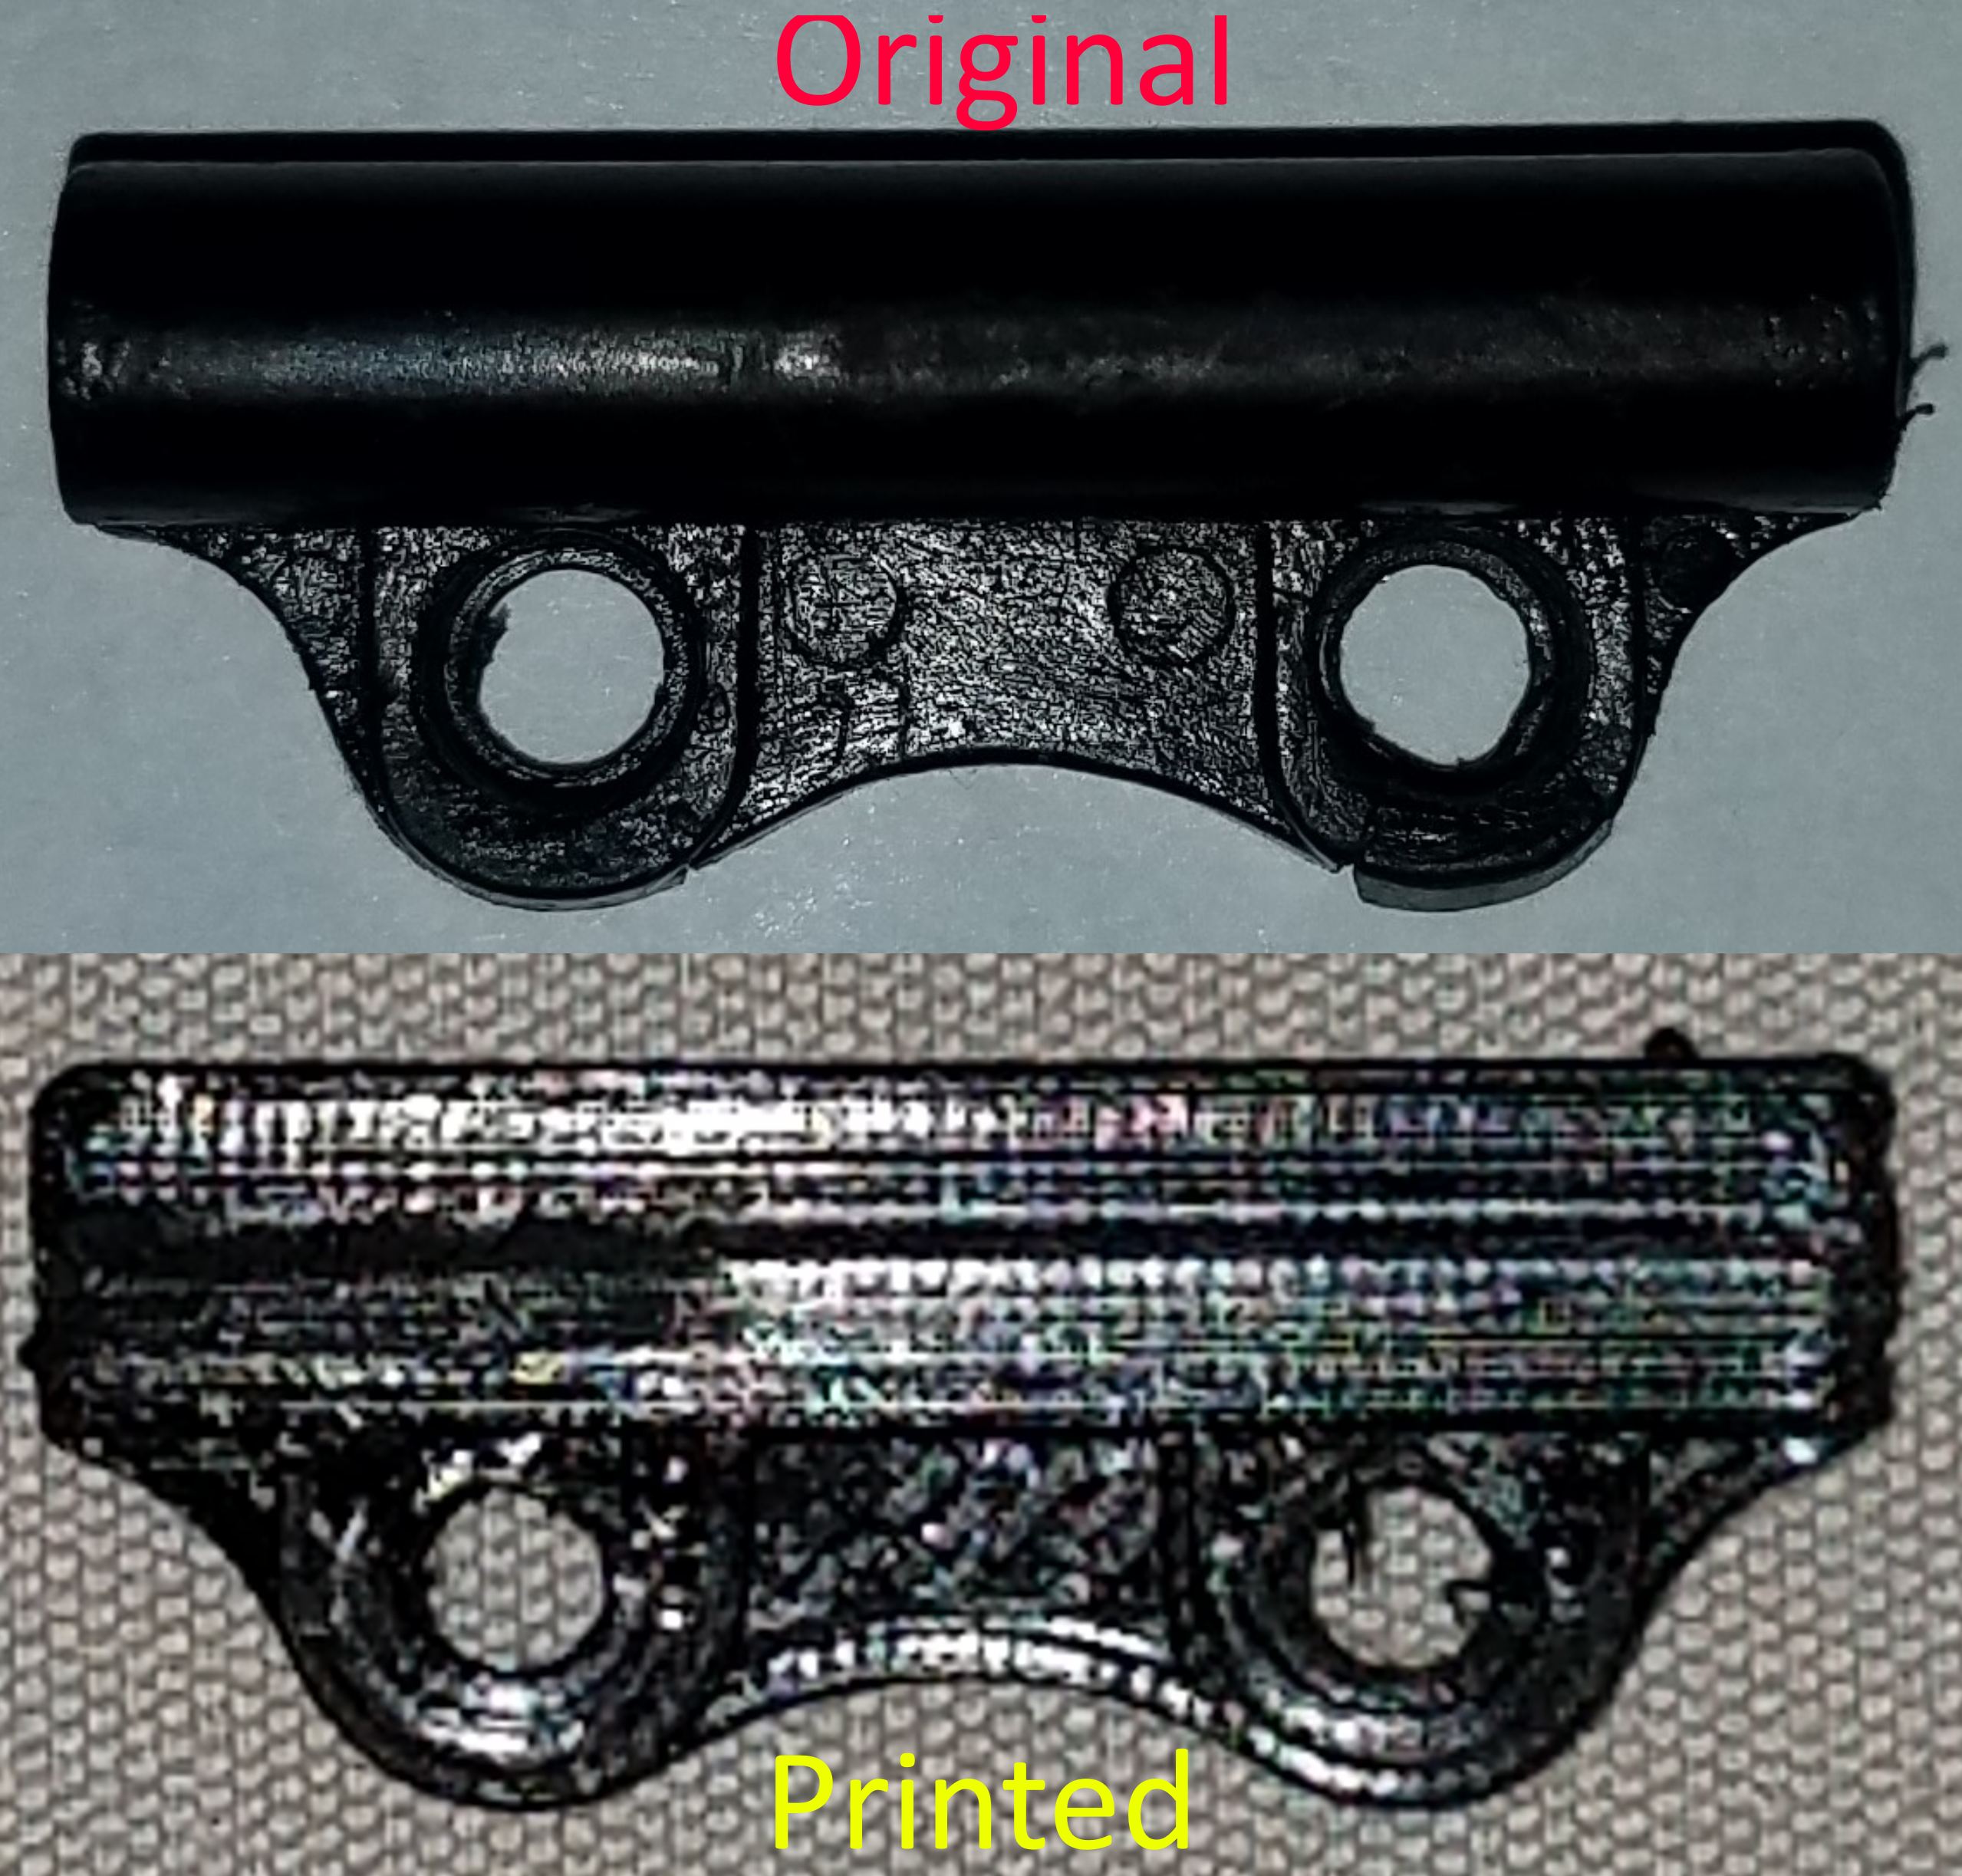 Comparison image.png Download STL file MicroMax 380 Plunger Tube A046 • 3D print object, Dito49